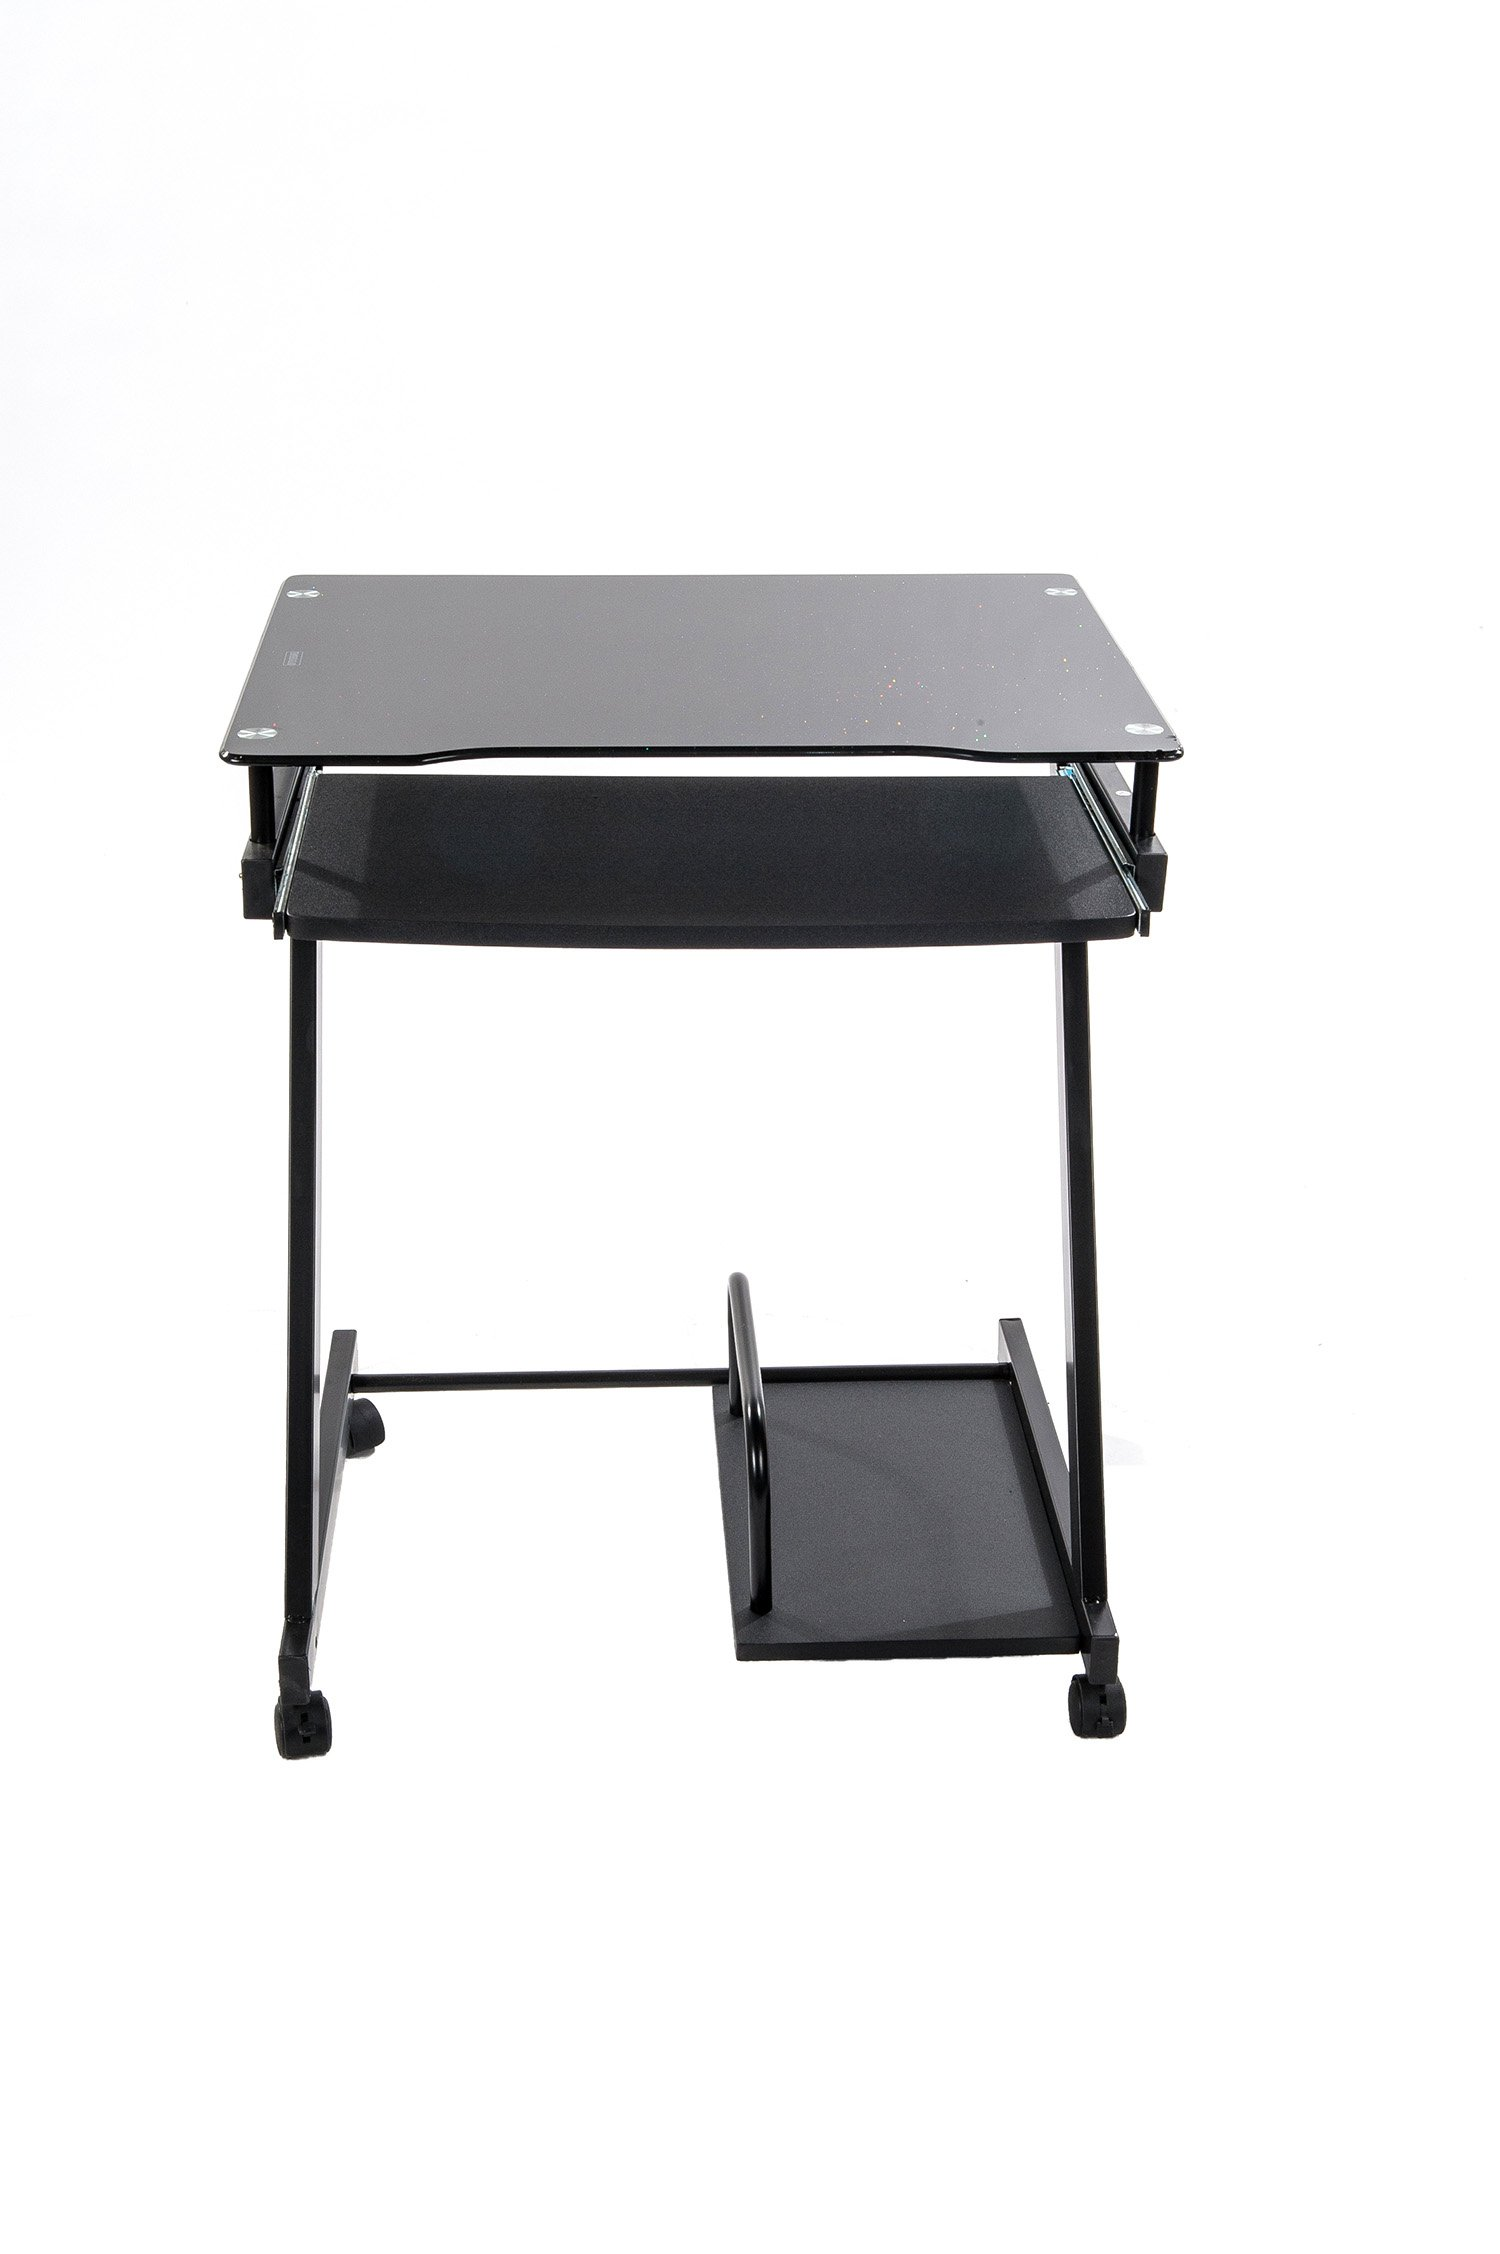 Home Source Industries AMT8811 4359 Glass Computer Cart, Black